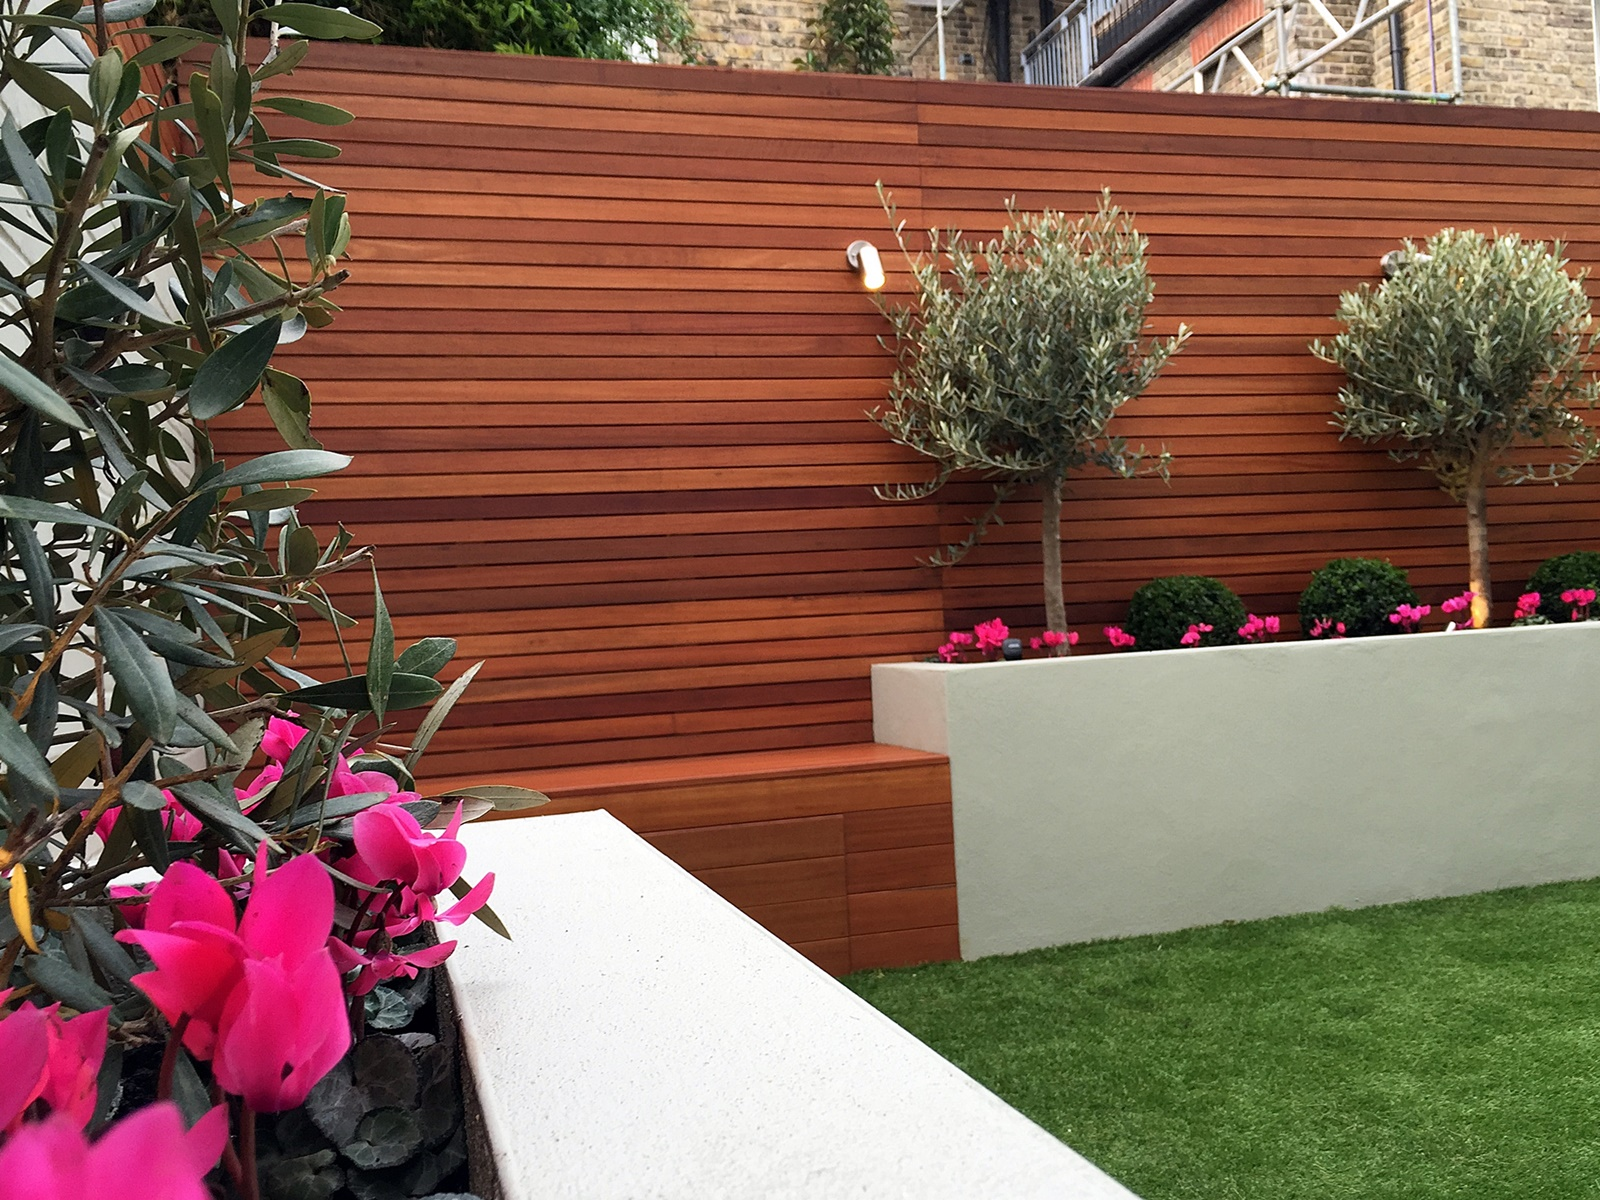 hardwood cedar slatted horizontal privacy screen trellis fence battersea clapham balham dulwich fulham chelsea kensington london